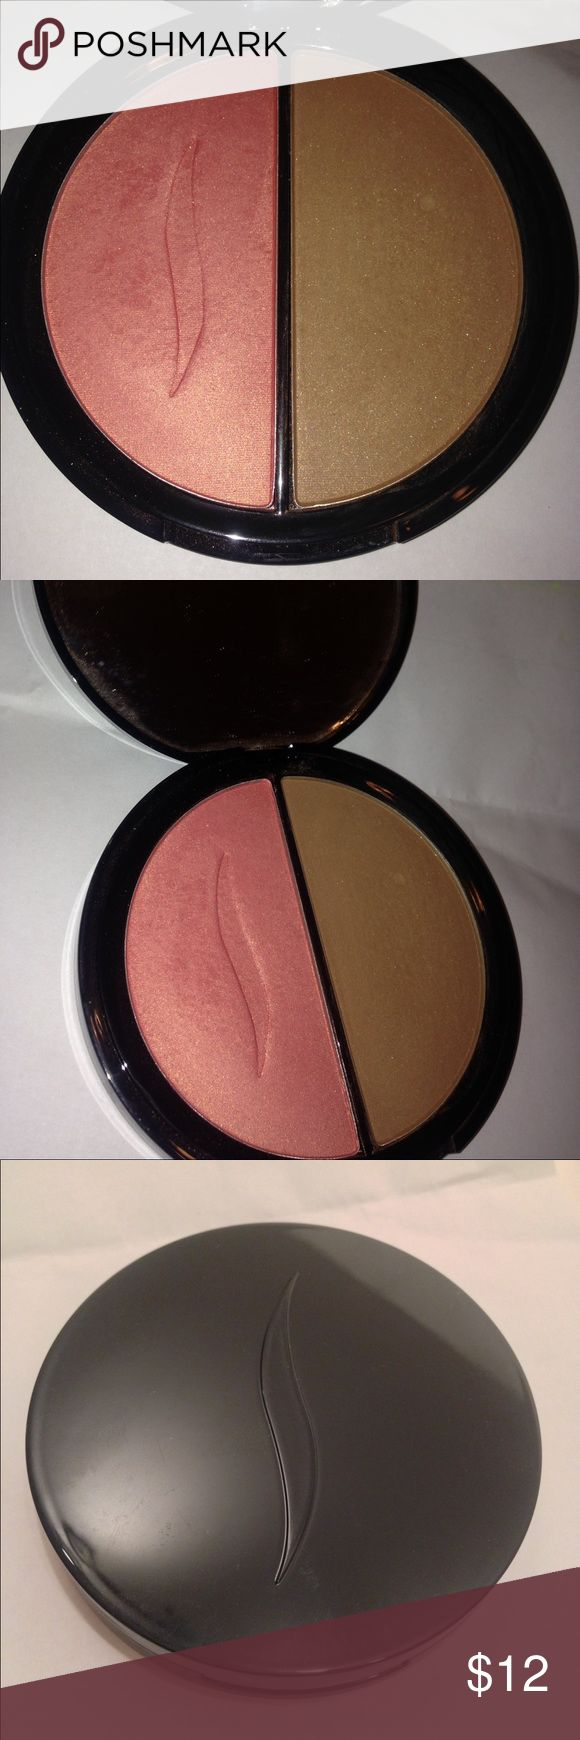 "Sephora Silk Blush Bronzer Duo in ""Sunset Dance"". Shimmery Pink Blush & Bronzer. Small dent in bronzer side. Sephora Makeup Blush"